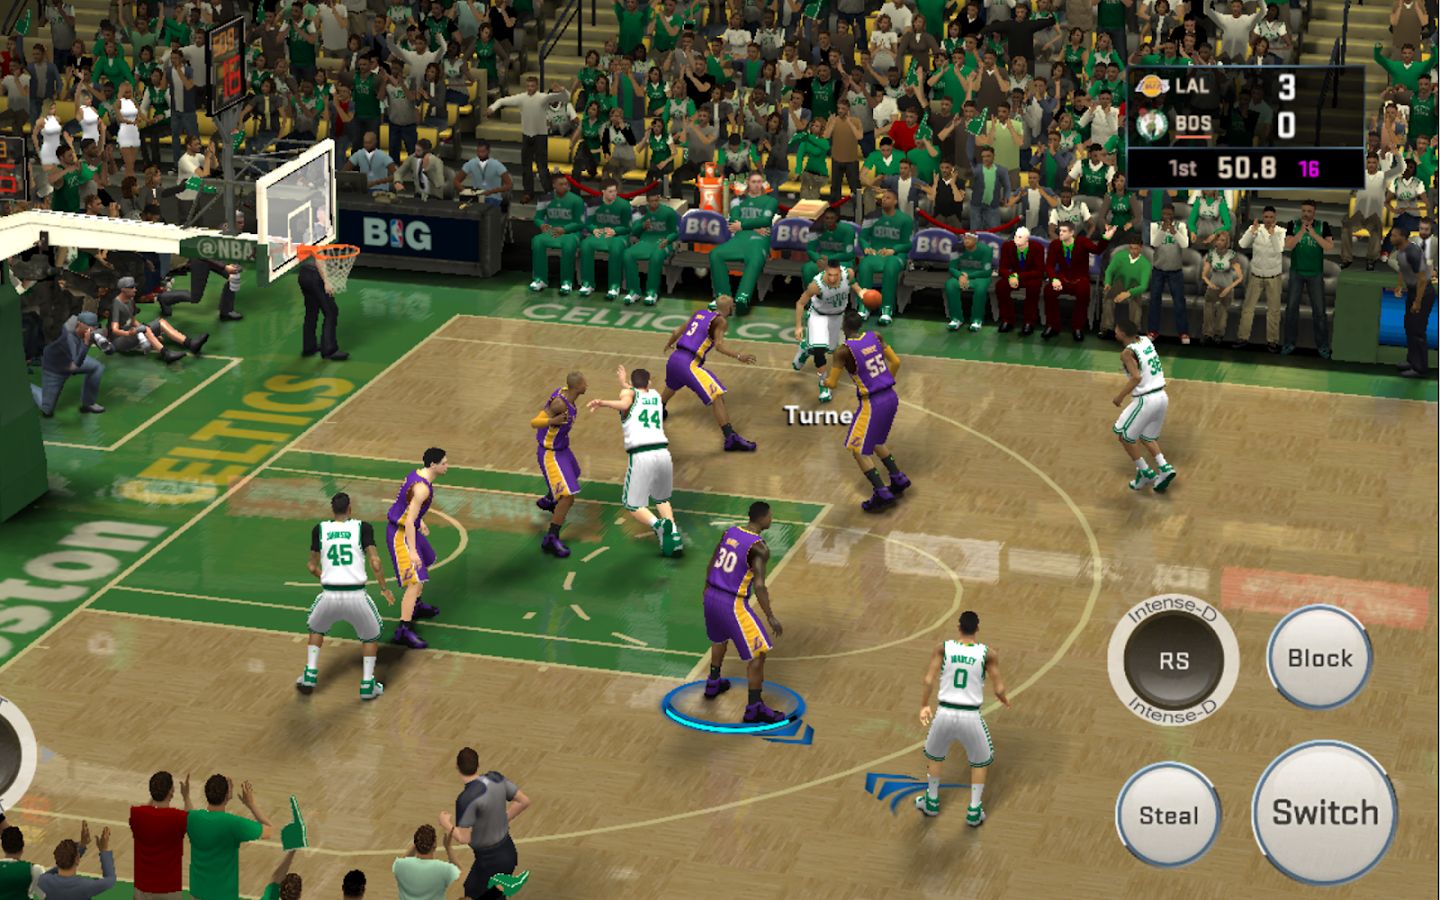 NBA 2K16 Screenshot 4